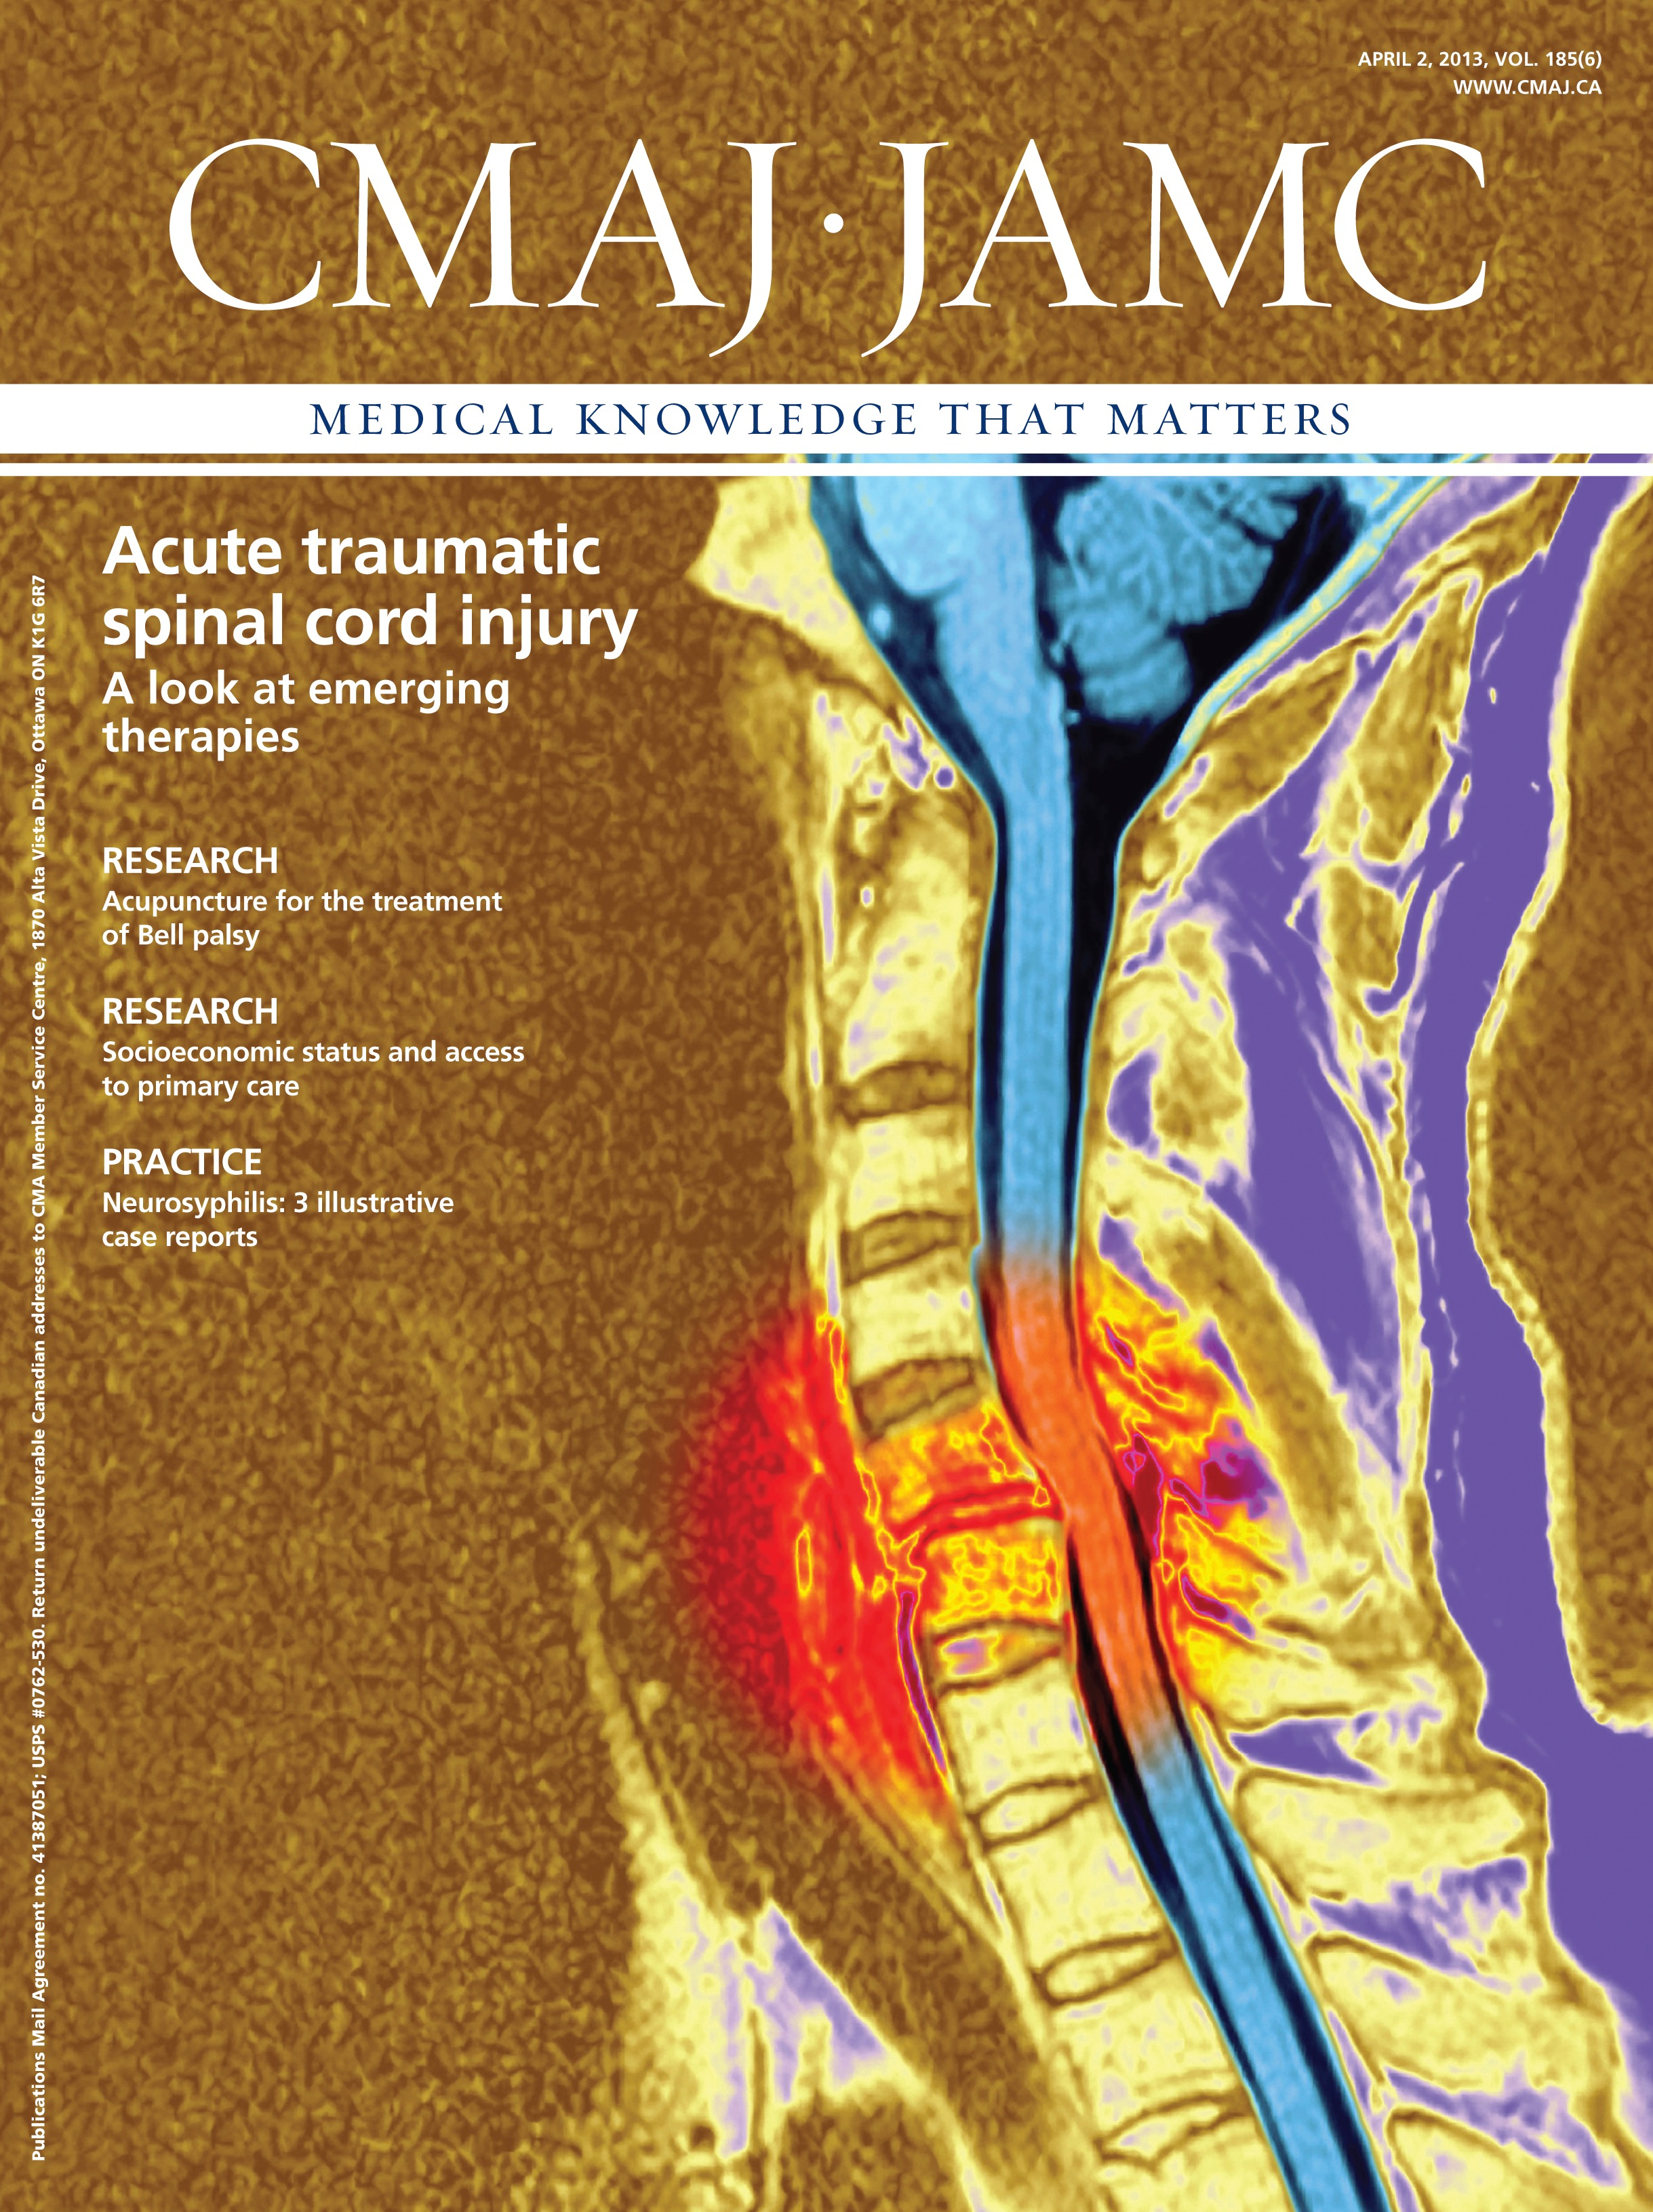 Emerging therapies for acute traumatic spinal cord injury | CMAJ